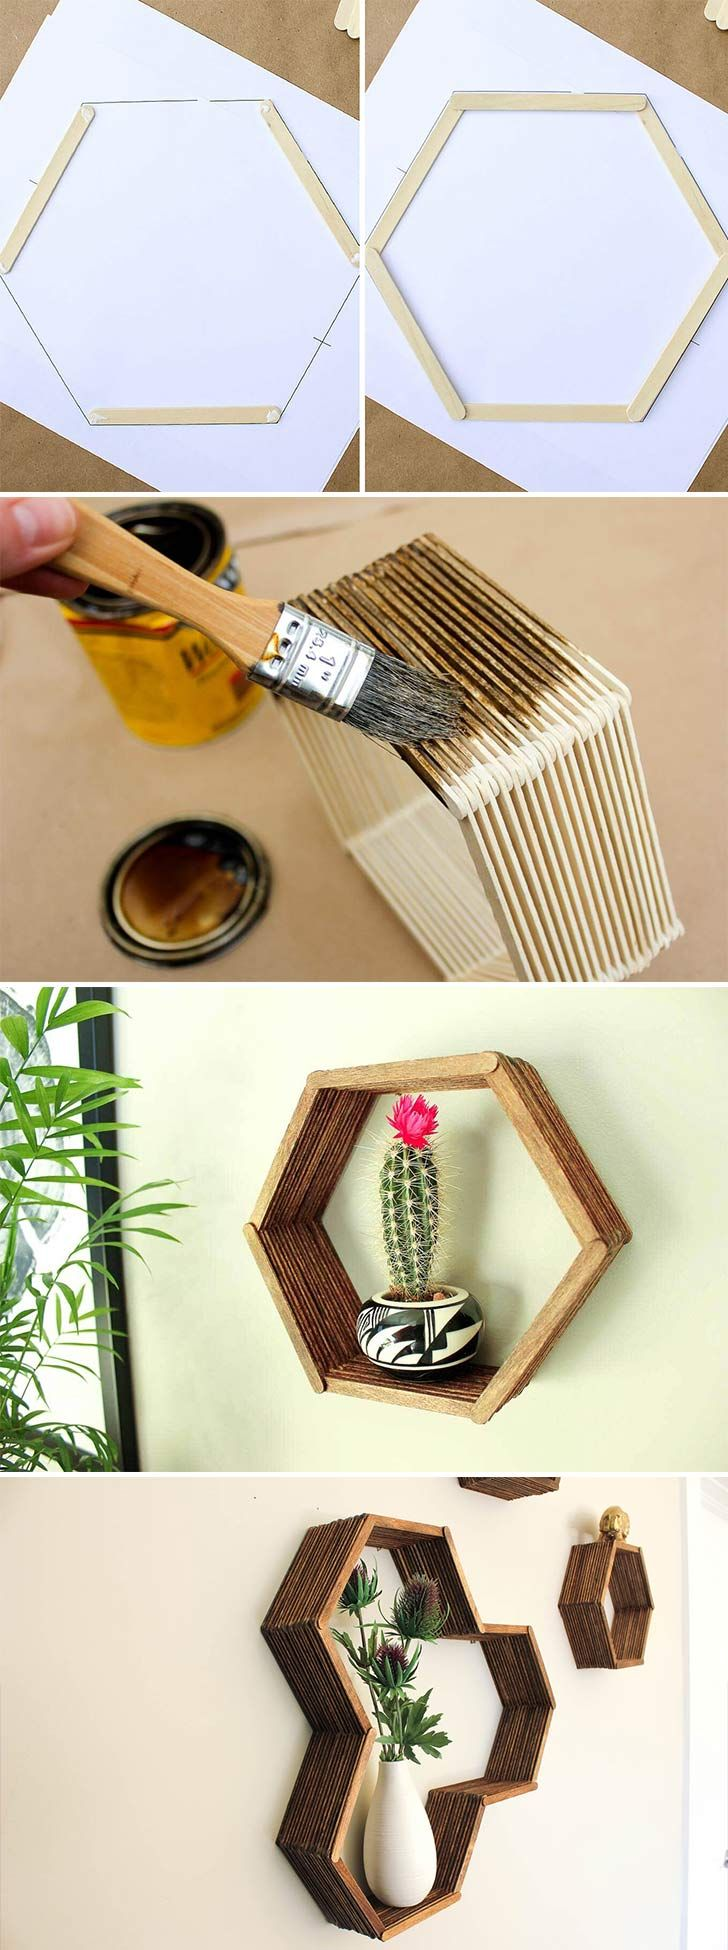 Category home decor page 7 - 40 Amazing Diy Home Decor Ideas That Won T Look Diyed Page 5 Of 40